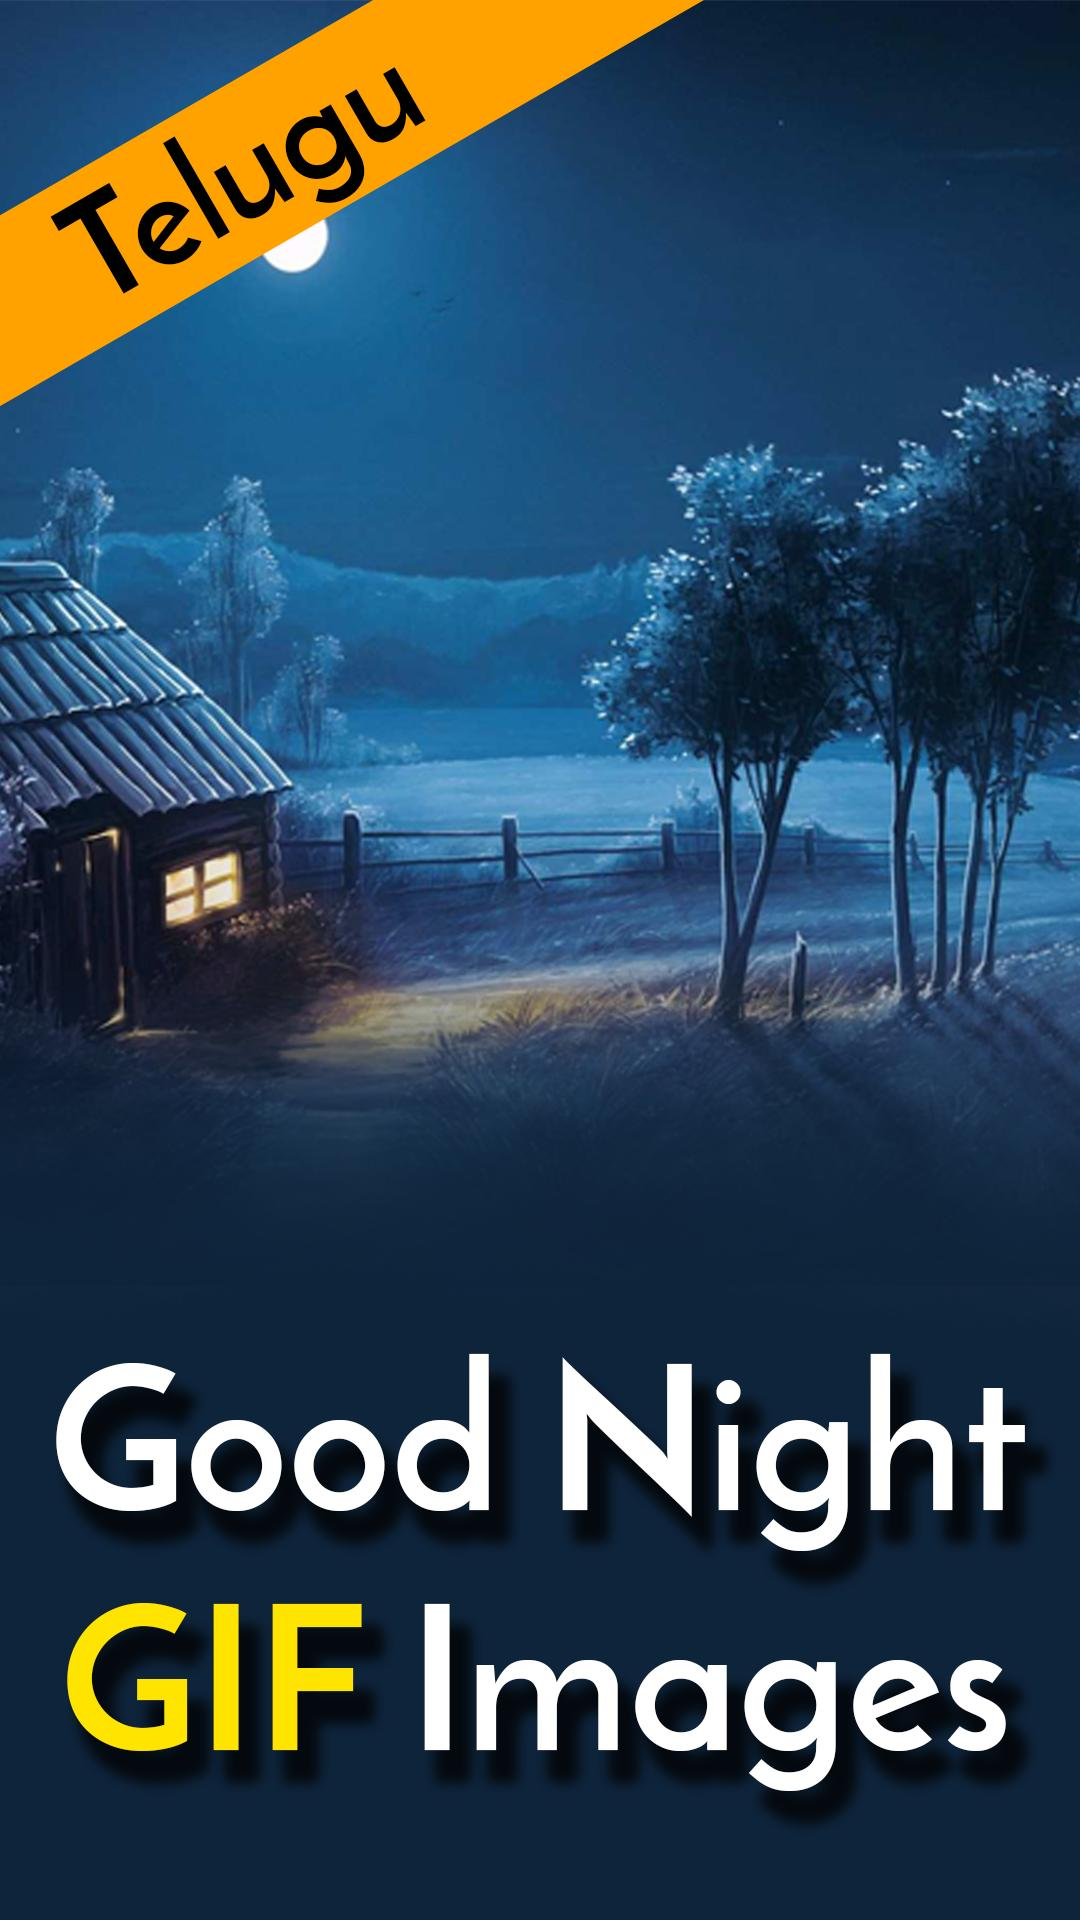 good night images hd telugu download